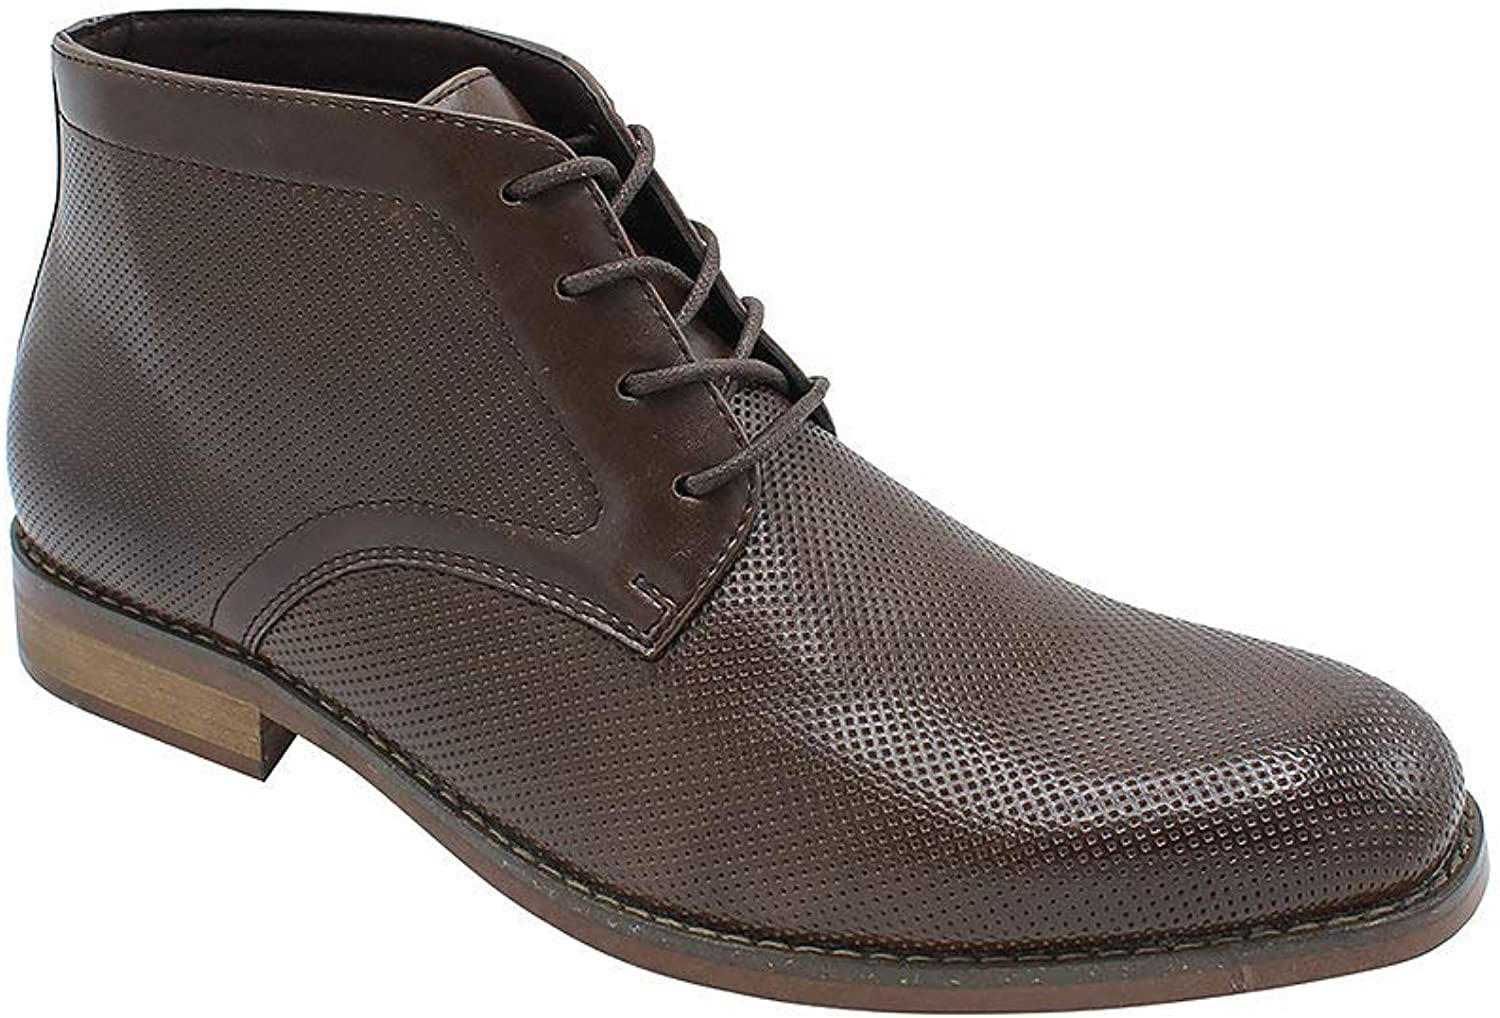 Mario Lopez Men's Formal Dress Casual Ankle Boot Lace Up